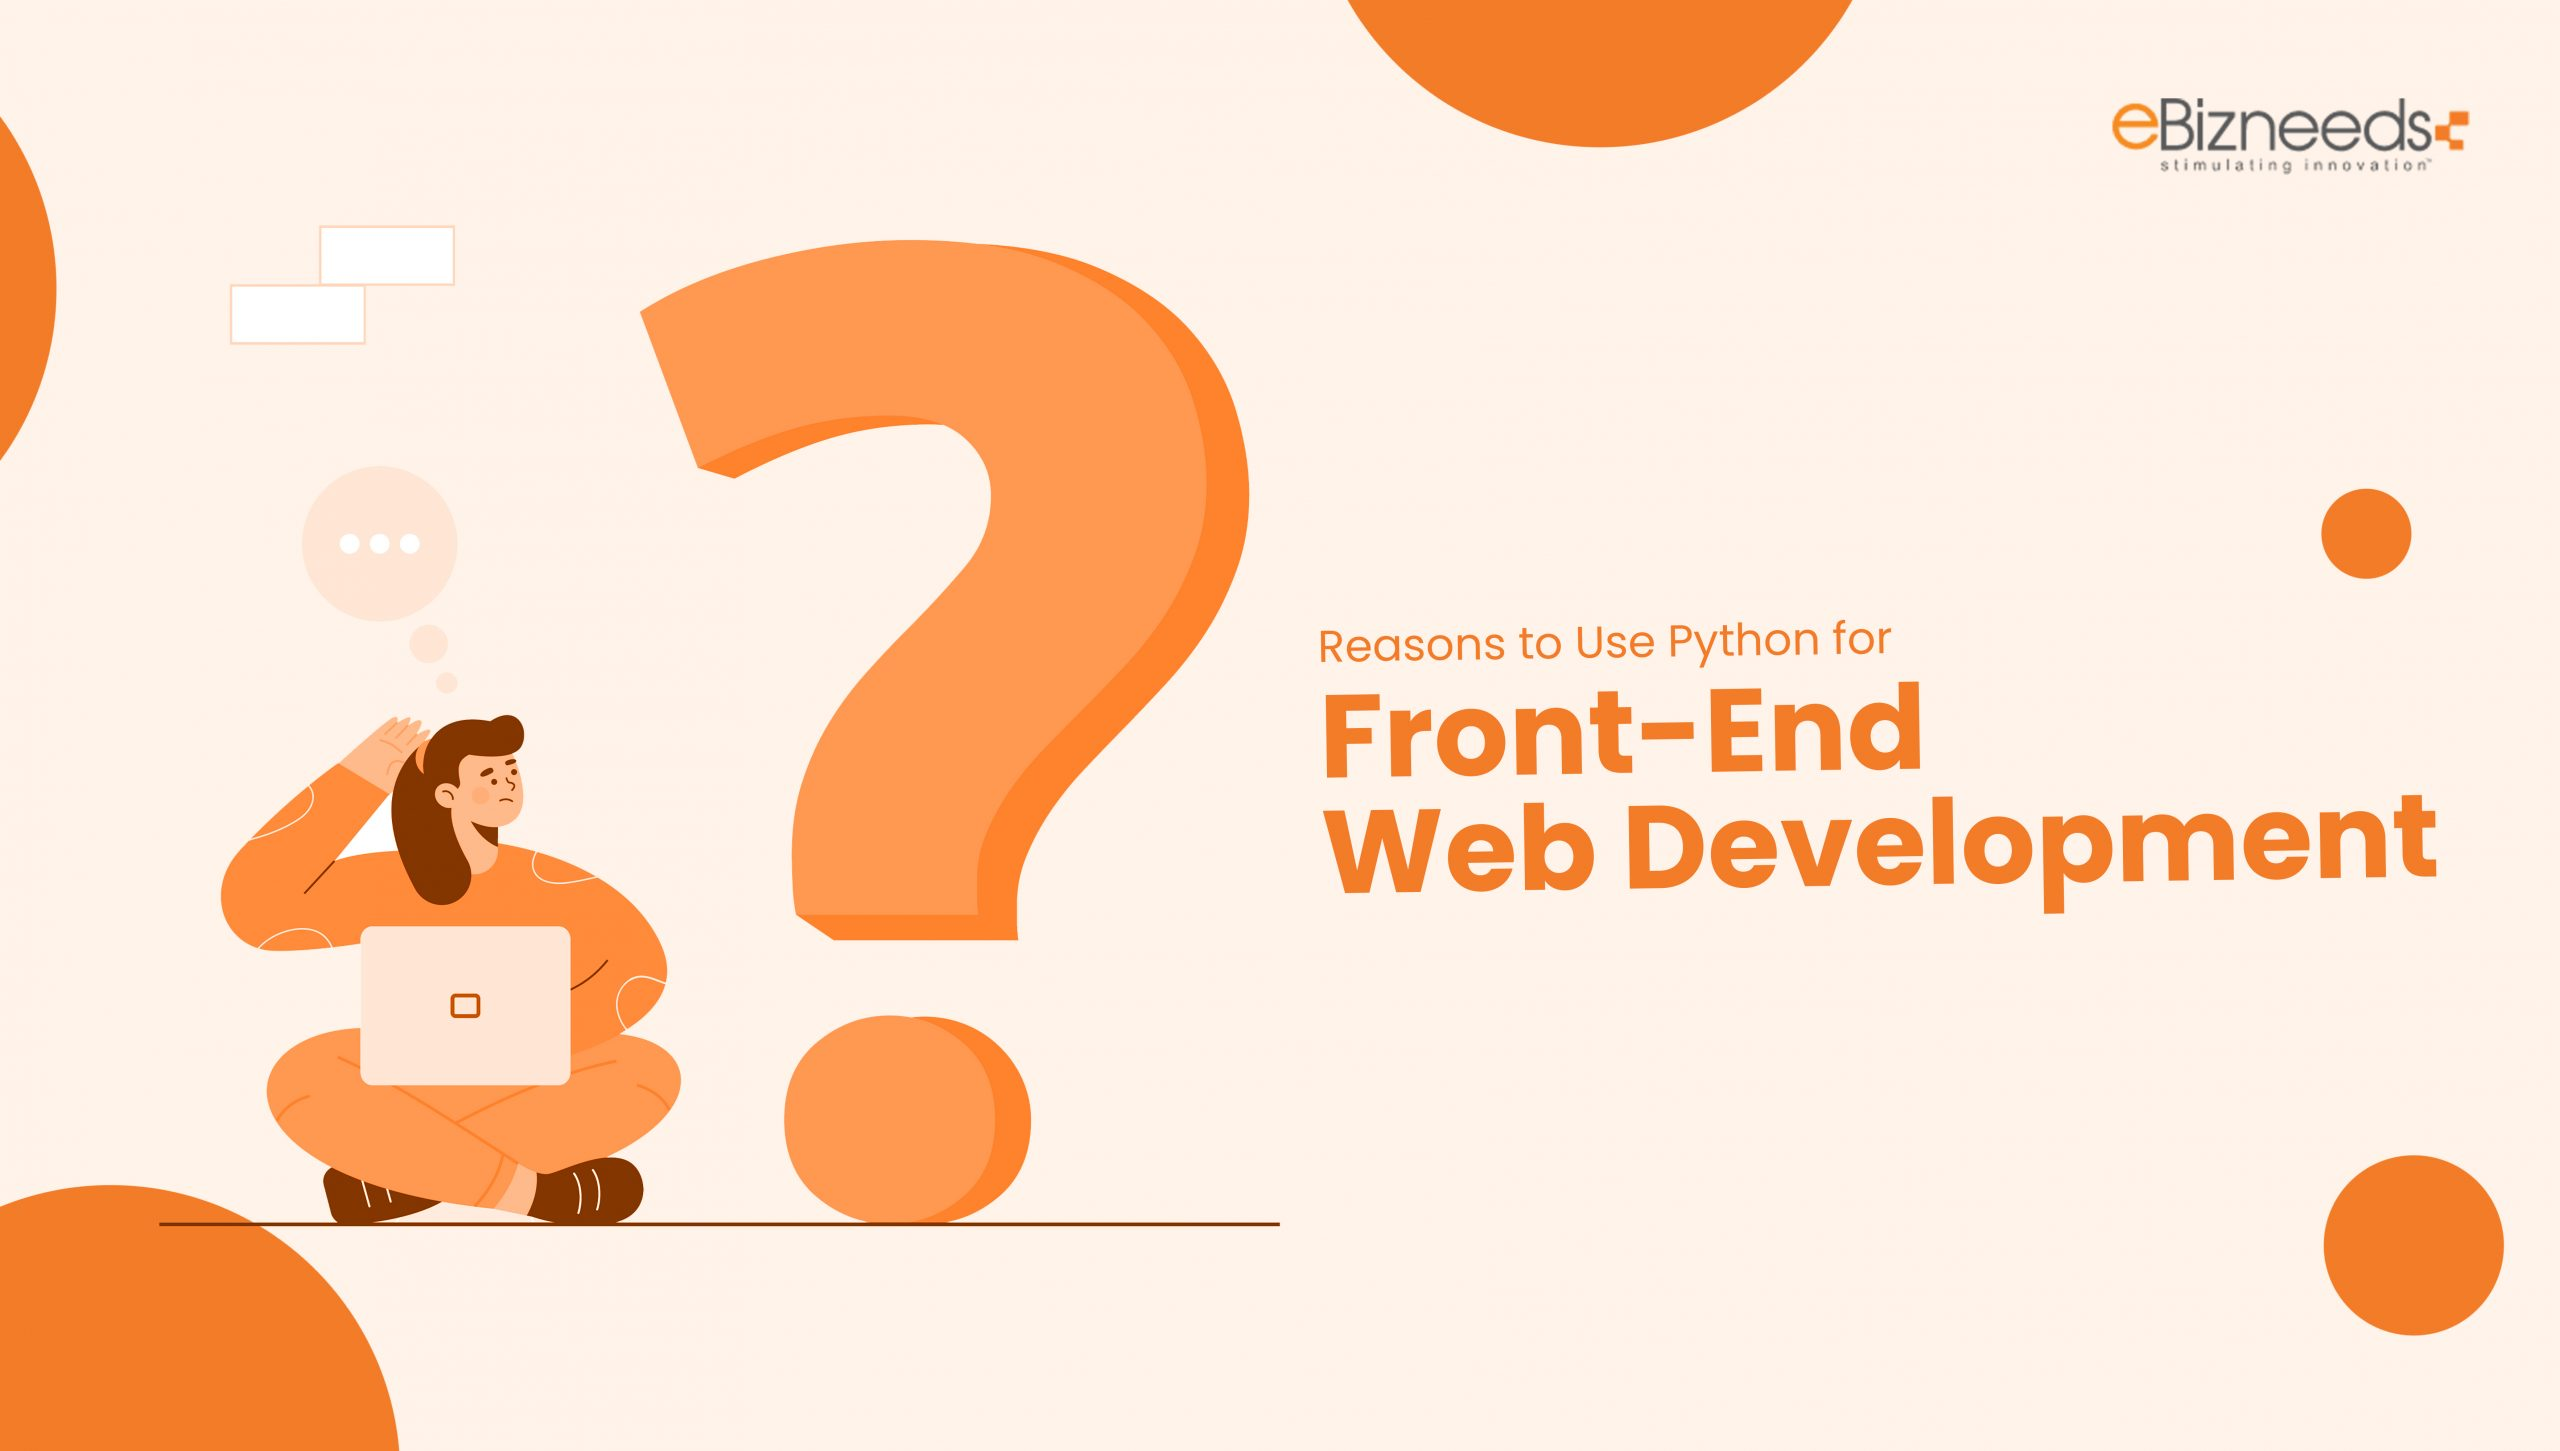 Reasons to Use Python for Front-End Web Development